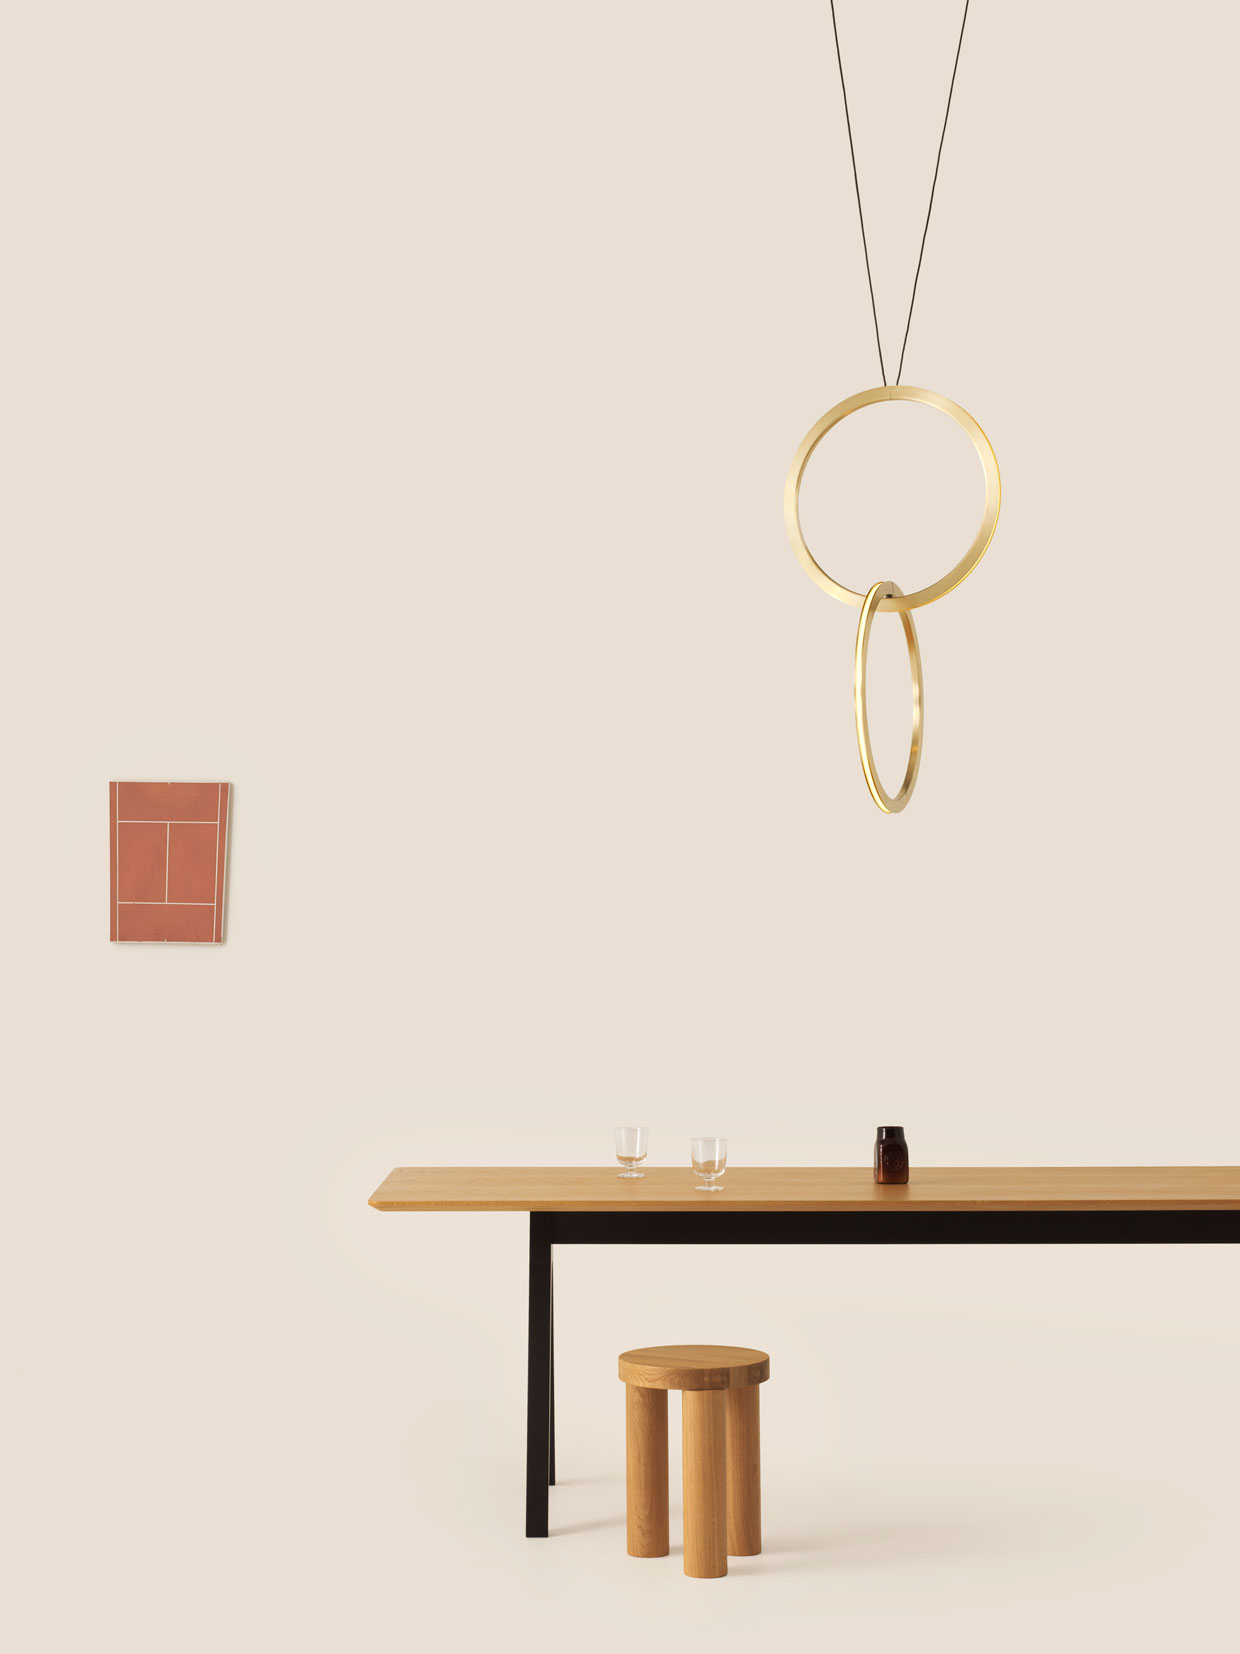 Milantrace-2017-Resident-Circus-Pendant-Scholar-Table-Offbeat-Stool-Salone-del-Mobile-2017-Yellowtrace